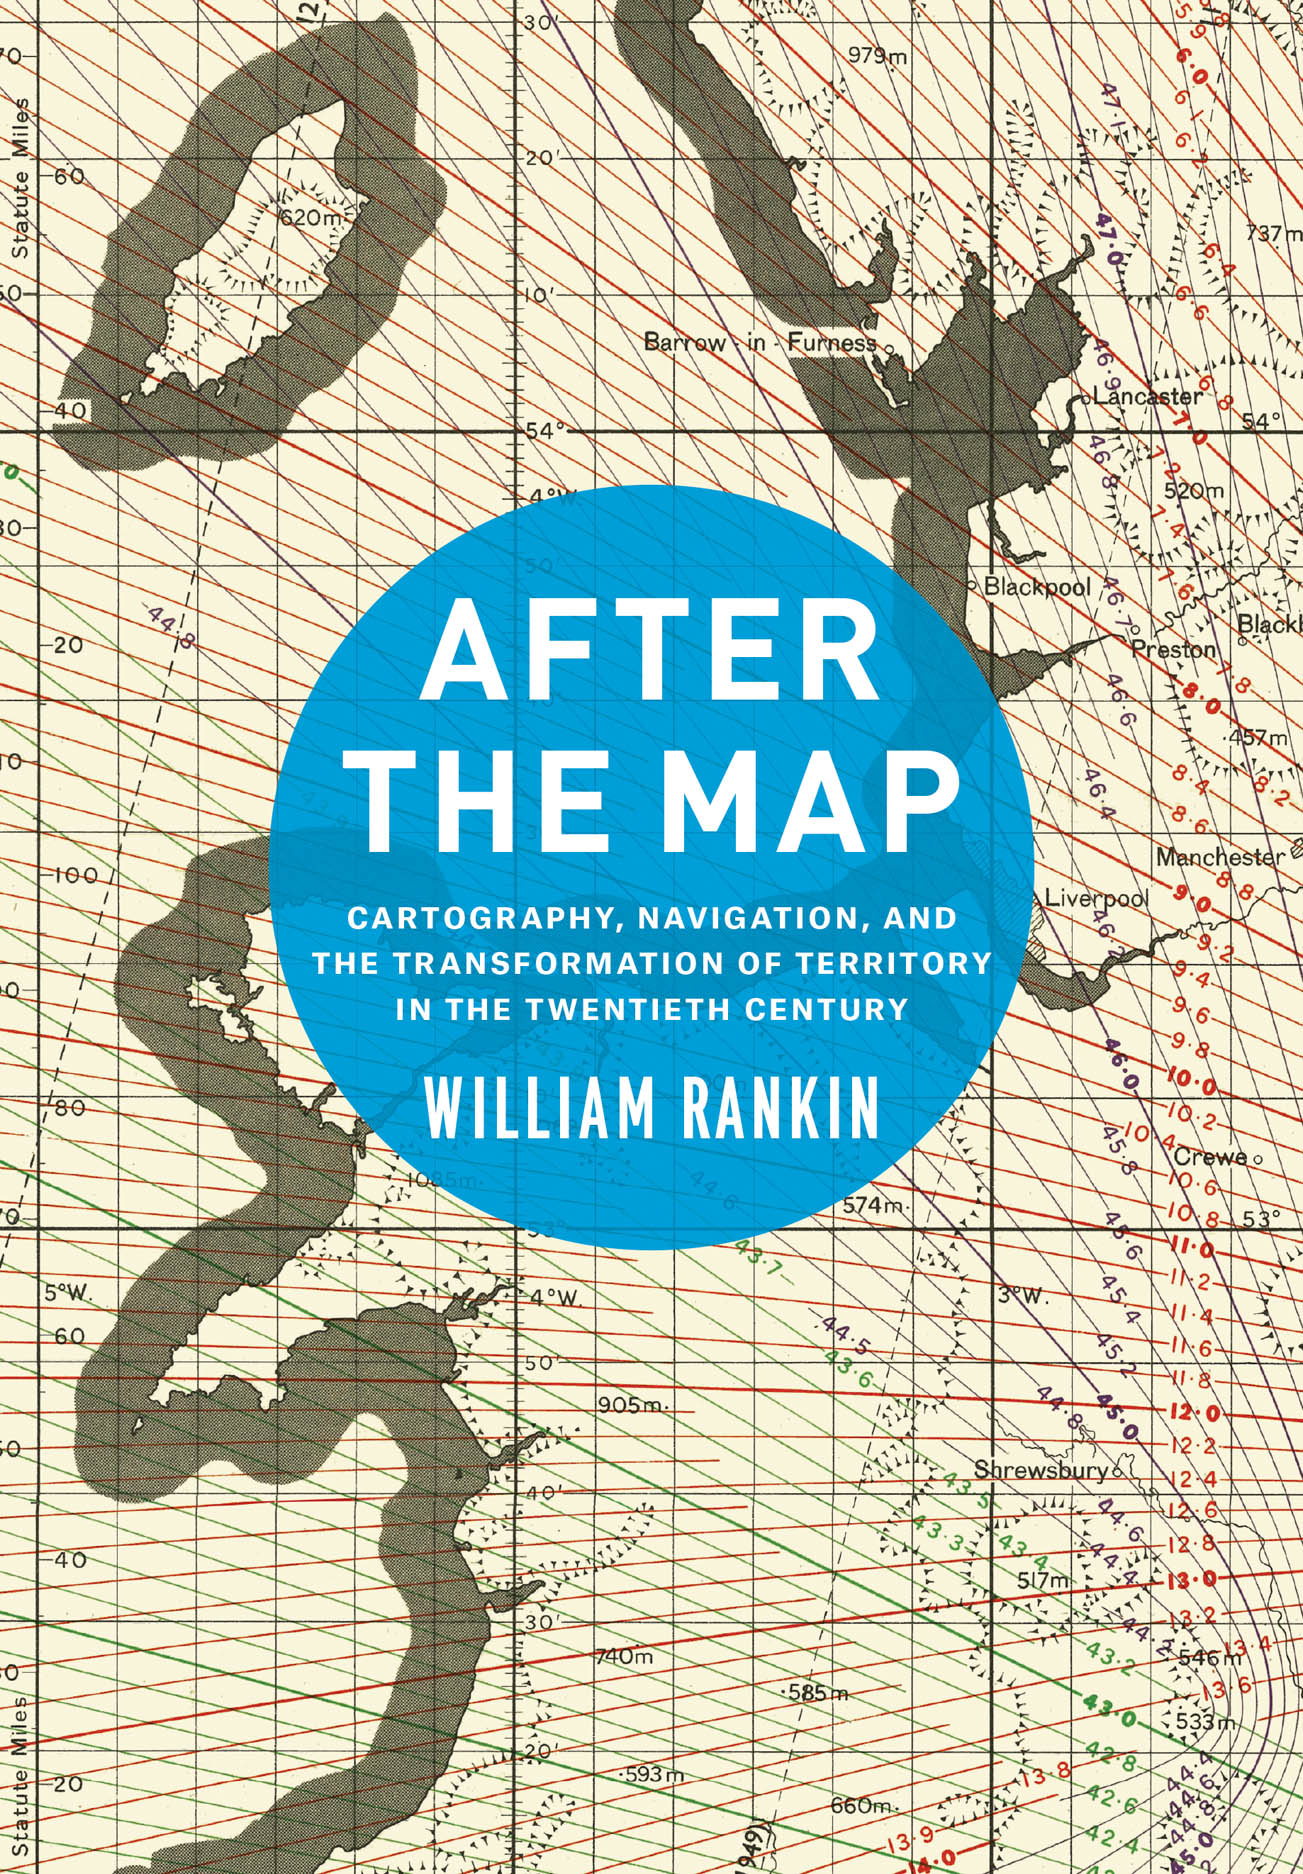 After the Map: Cartography, Navigation, and the Transformation of Territory in the Twentieth Century